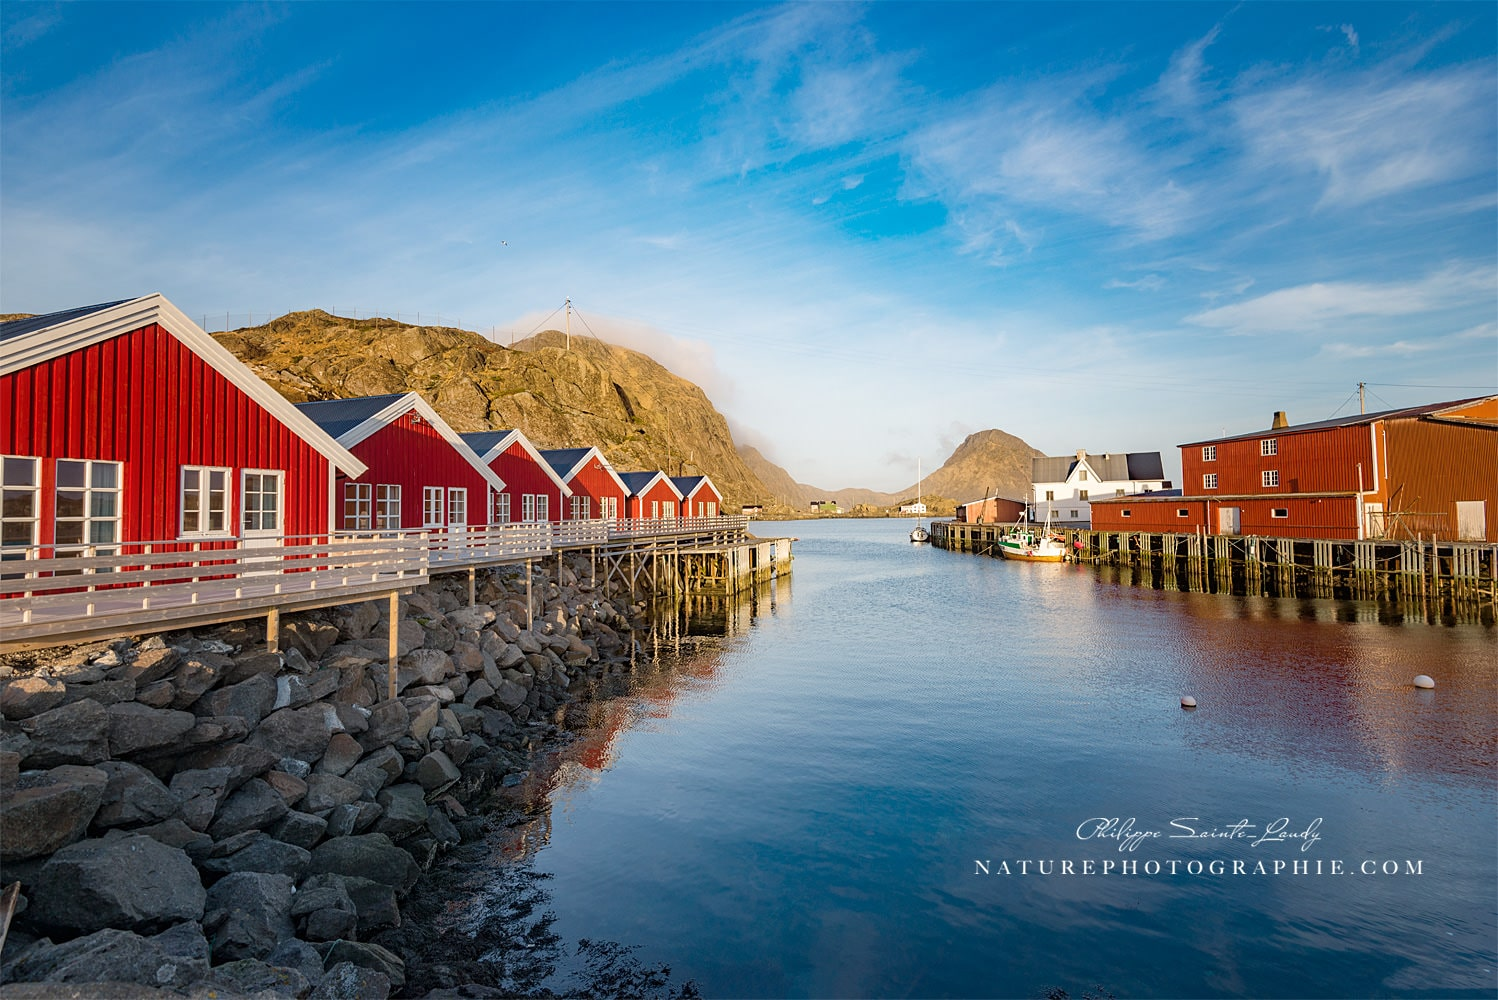 The Fishing Port of Mortsund